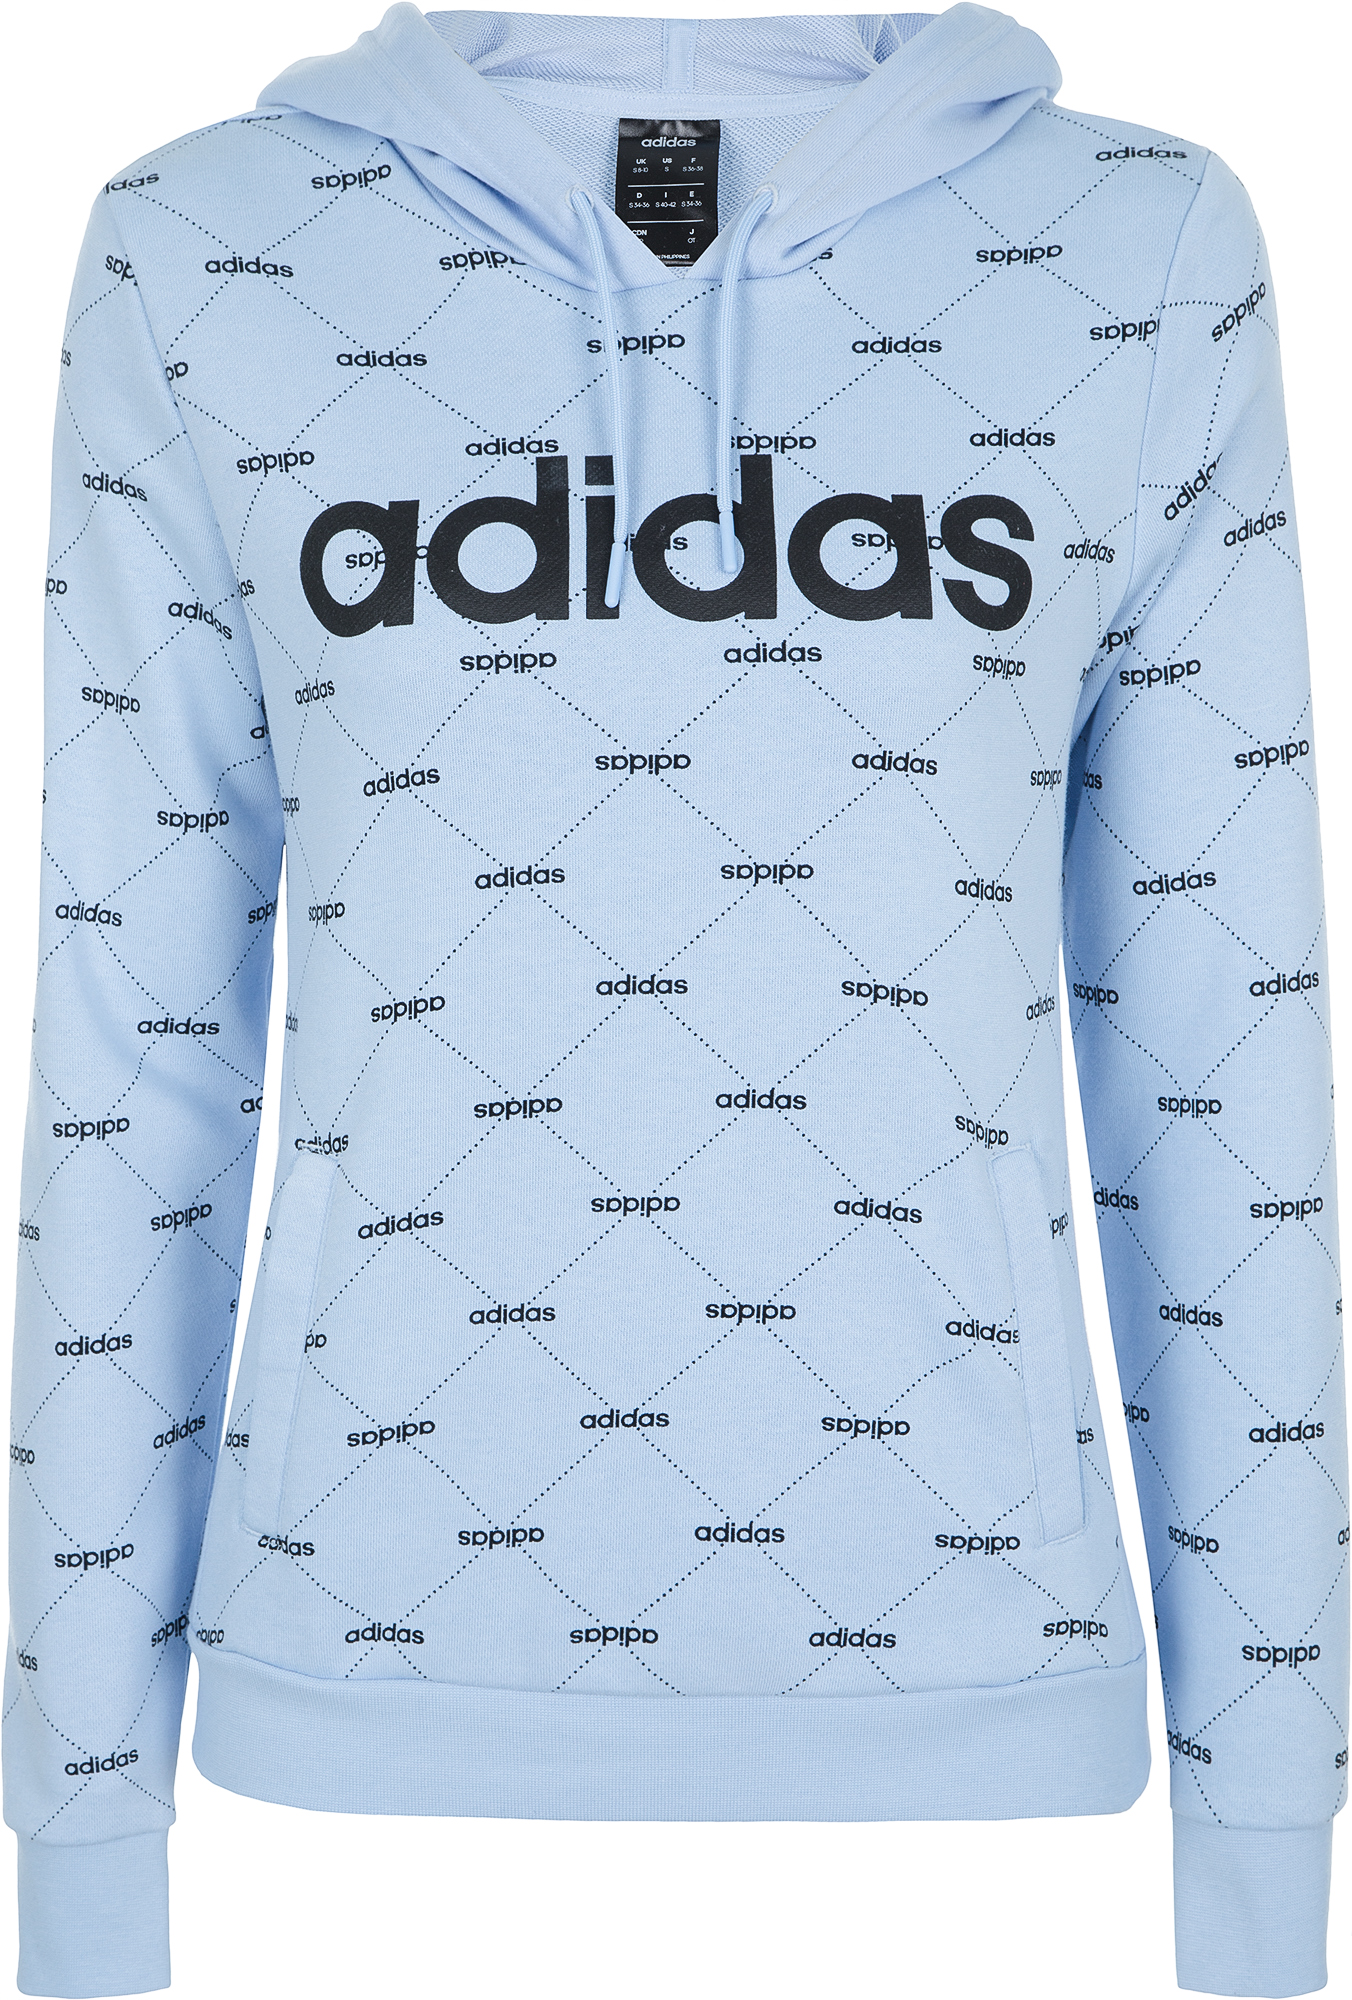 Adidas Худи женская Adidas Linear Graphic, размер 40 clothes graphic striped hoodie